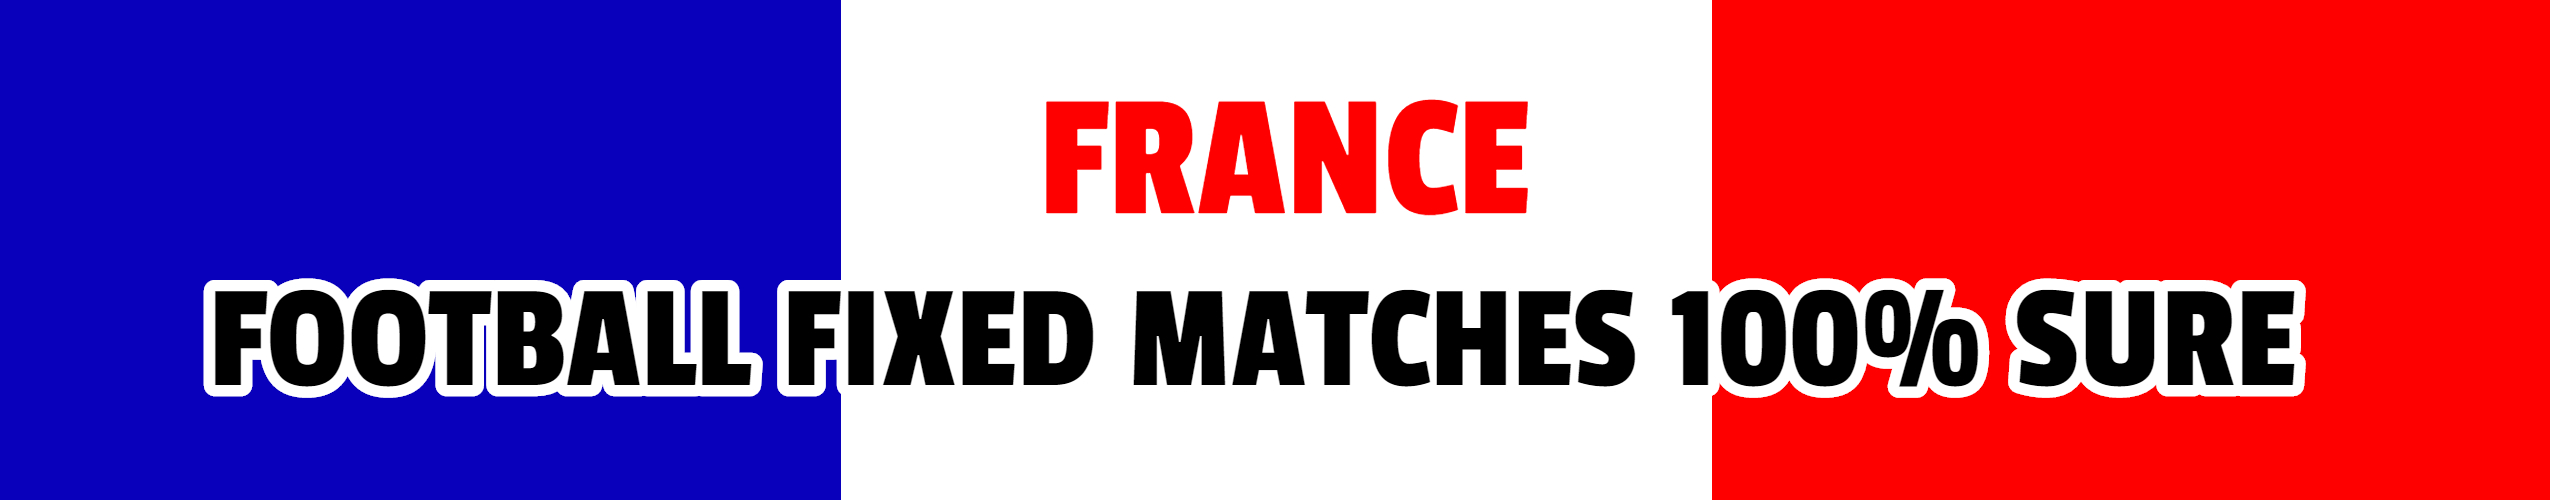 FRANCE FIXING MATCHES 100%